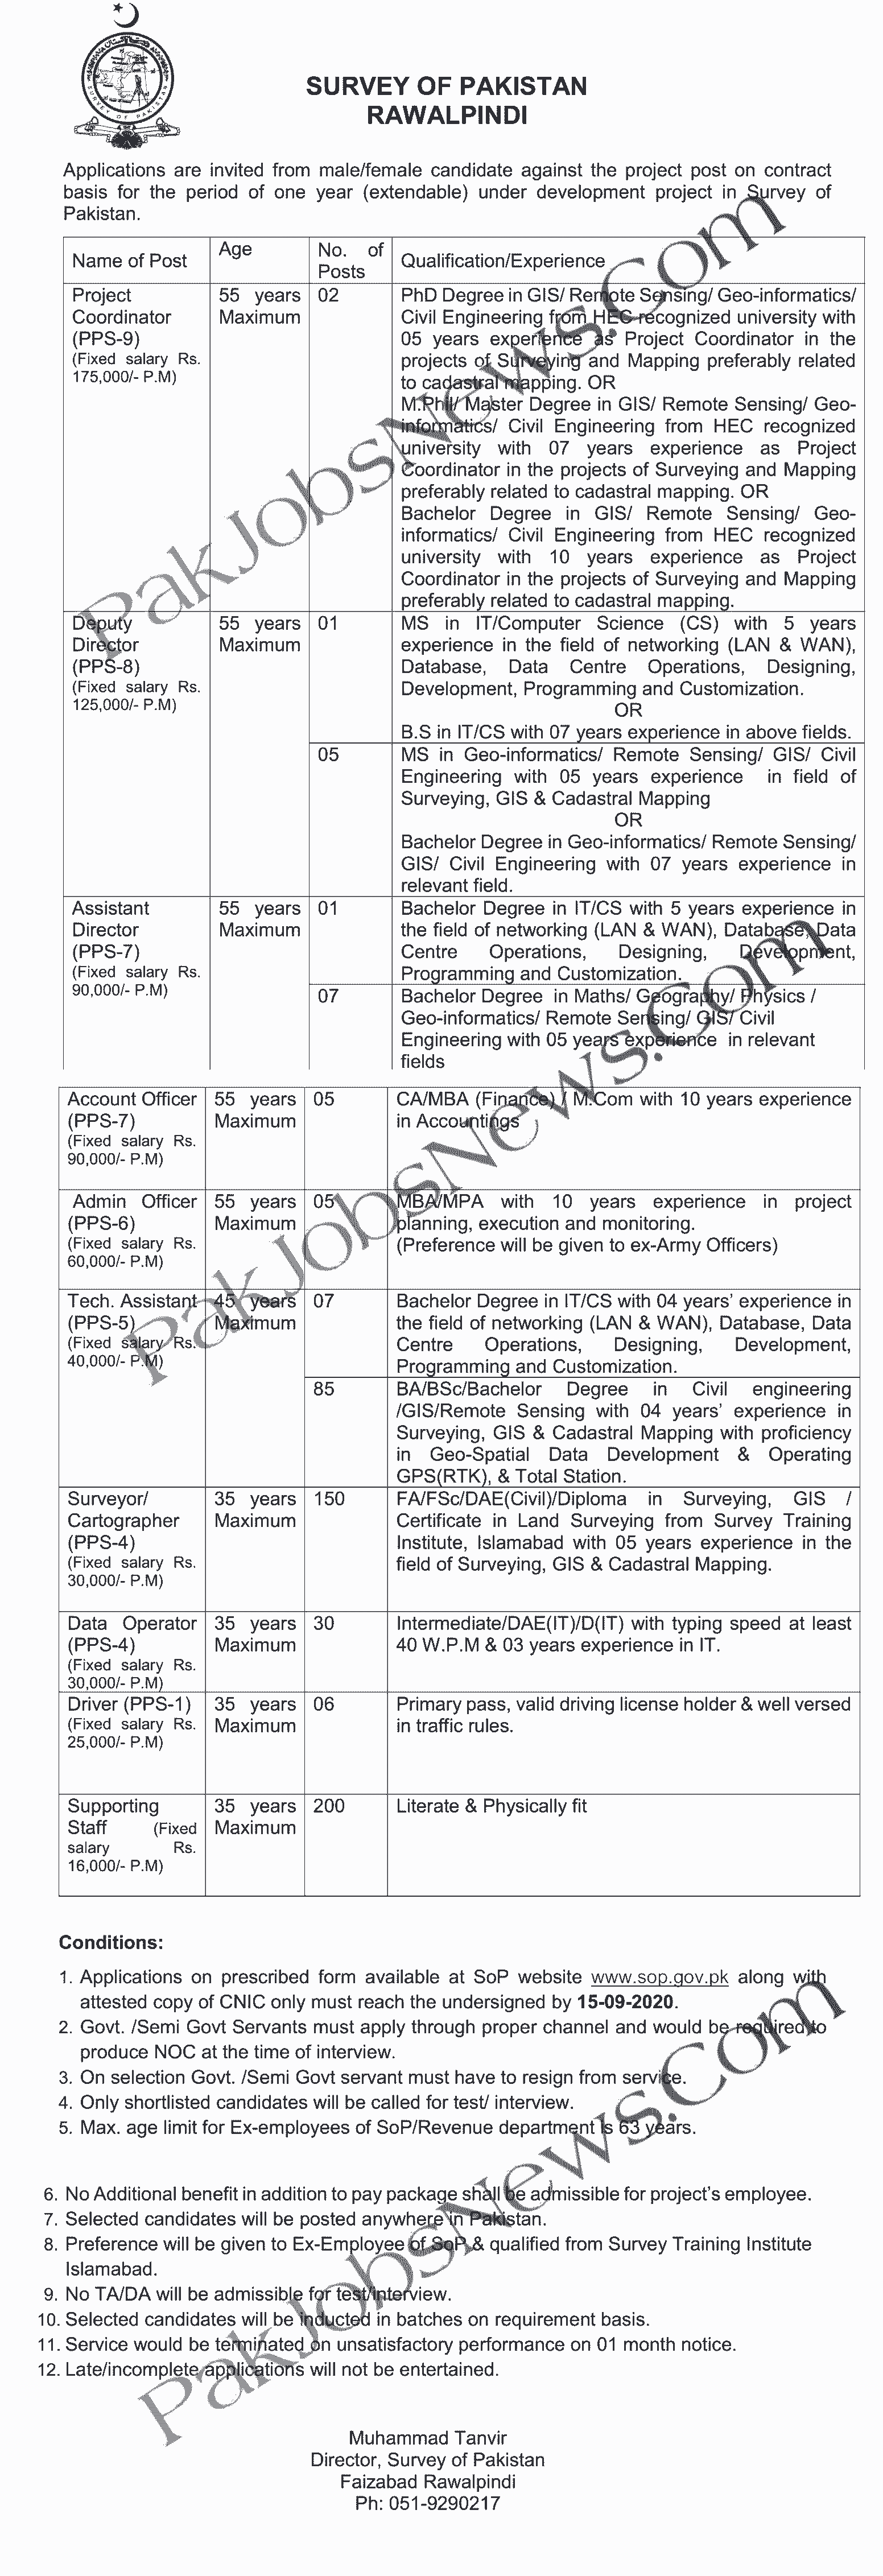 Pakistan Survey Jobs Advertisement September 2020